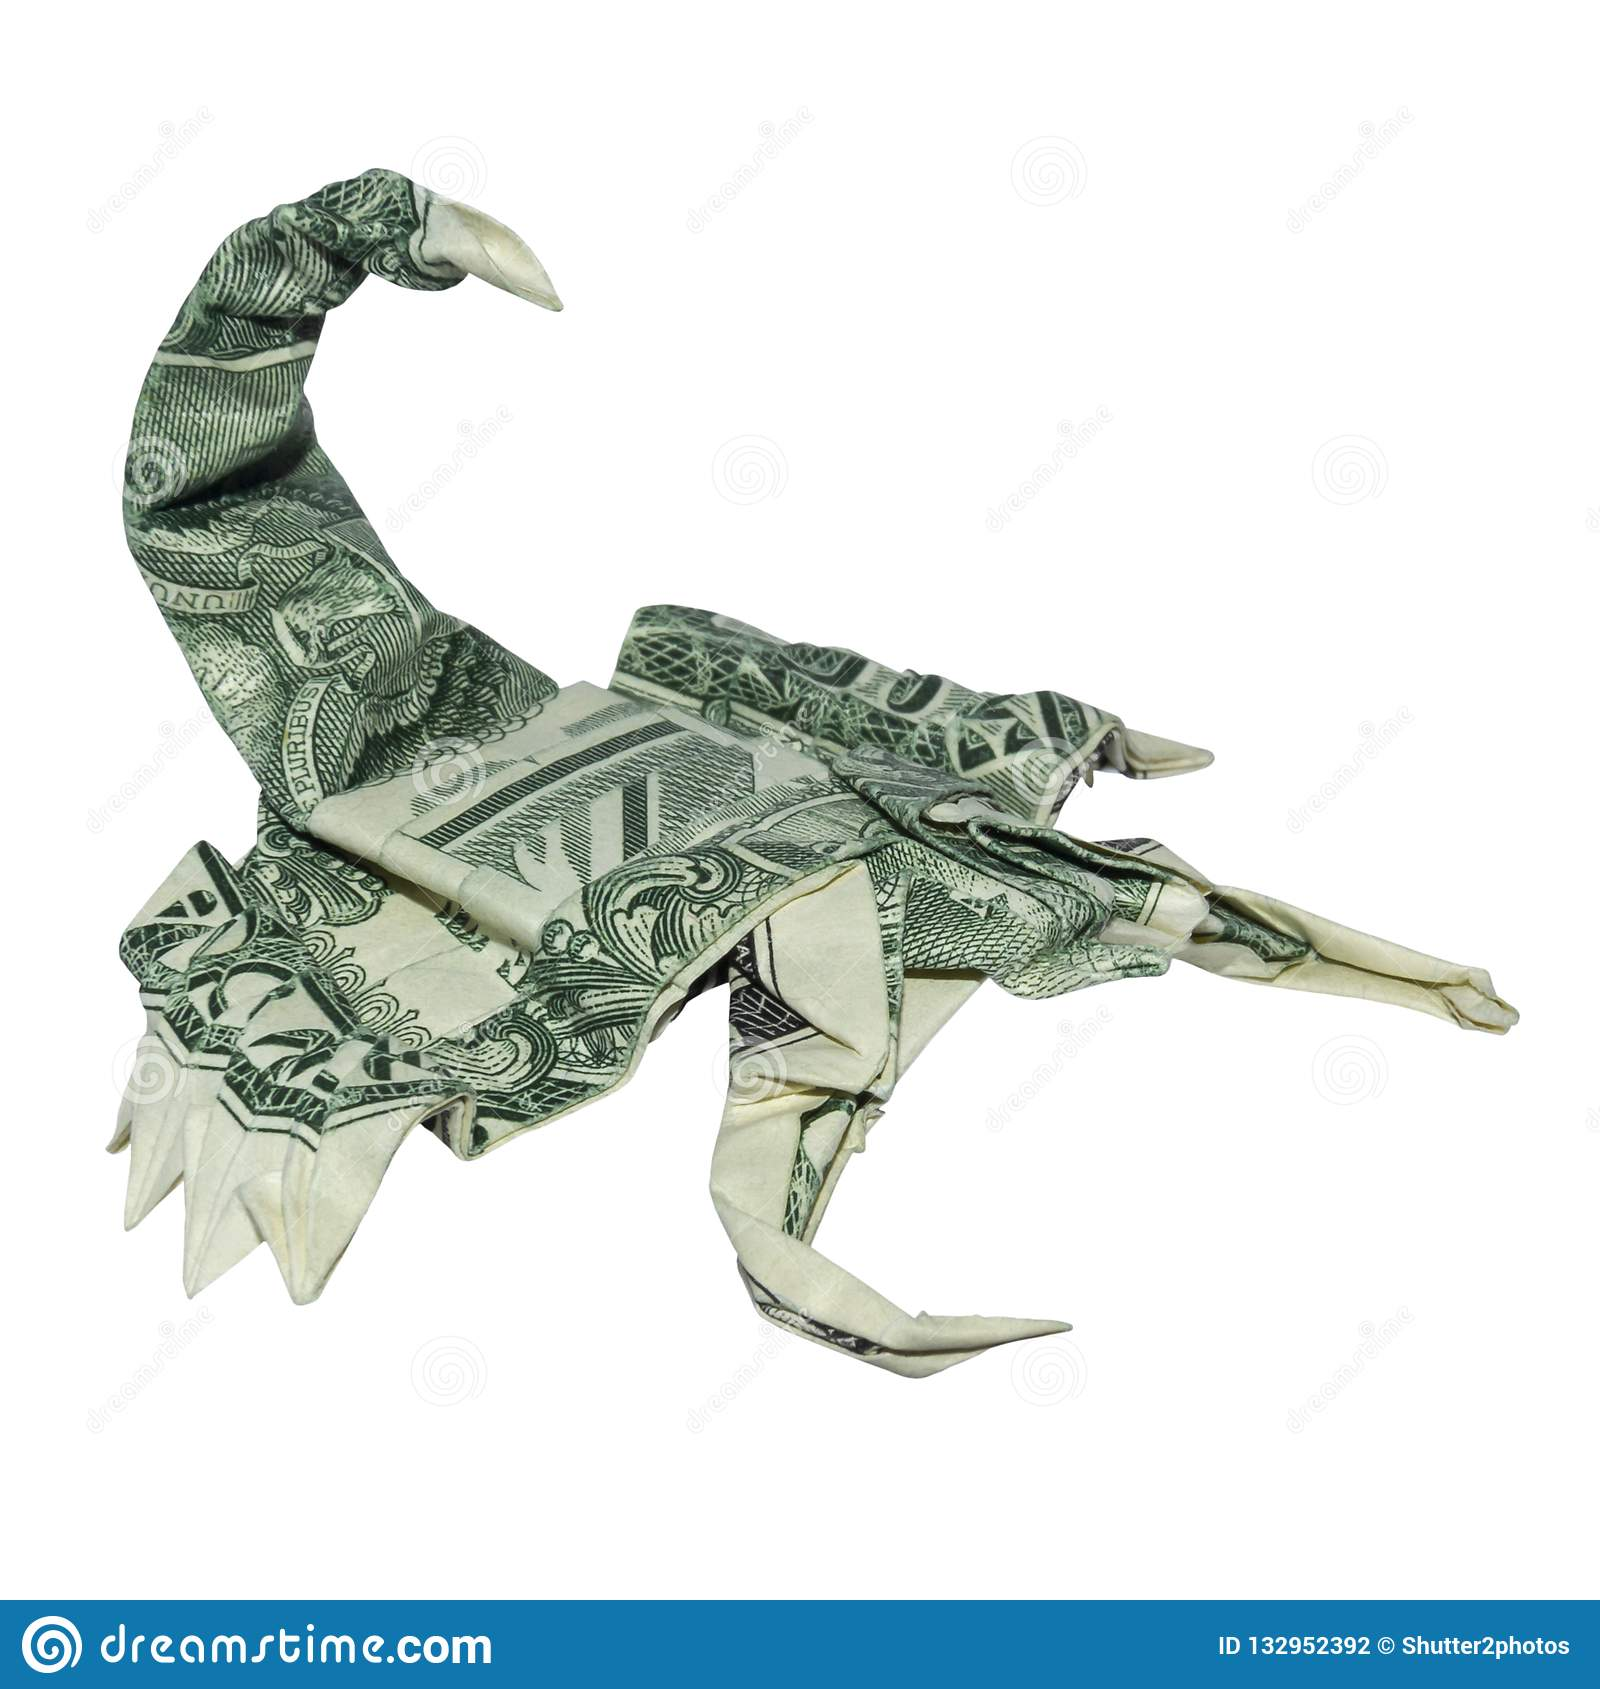 Money Origami Green SCORPION Folded with Real One Dollar Bill Scorpio Zodiac Sign Isolated White Background